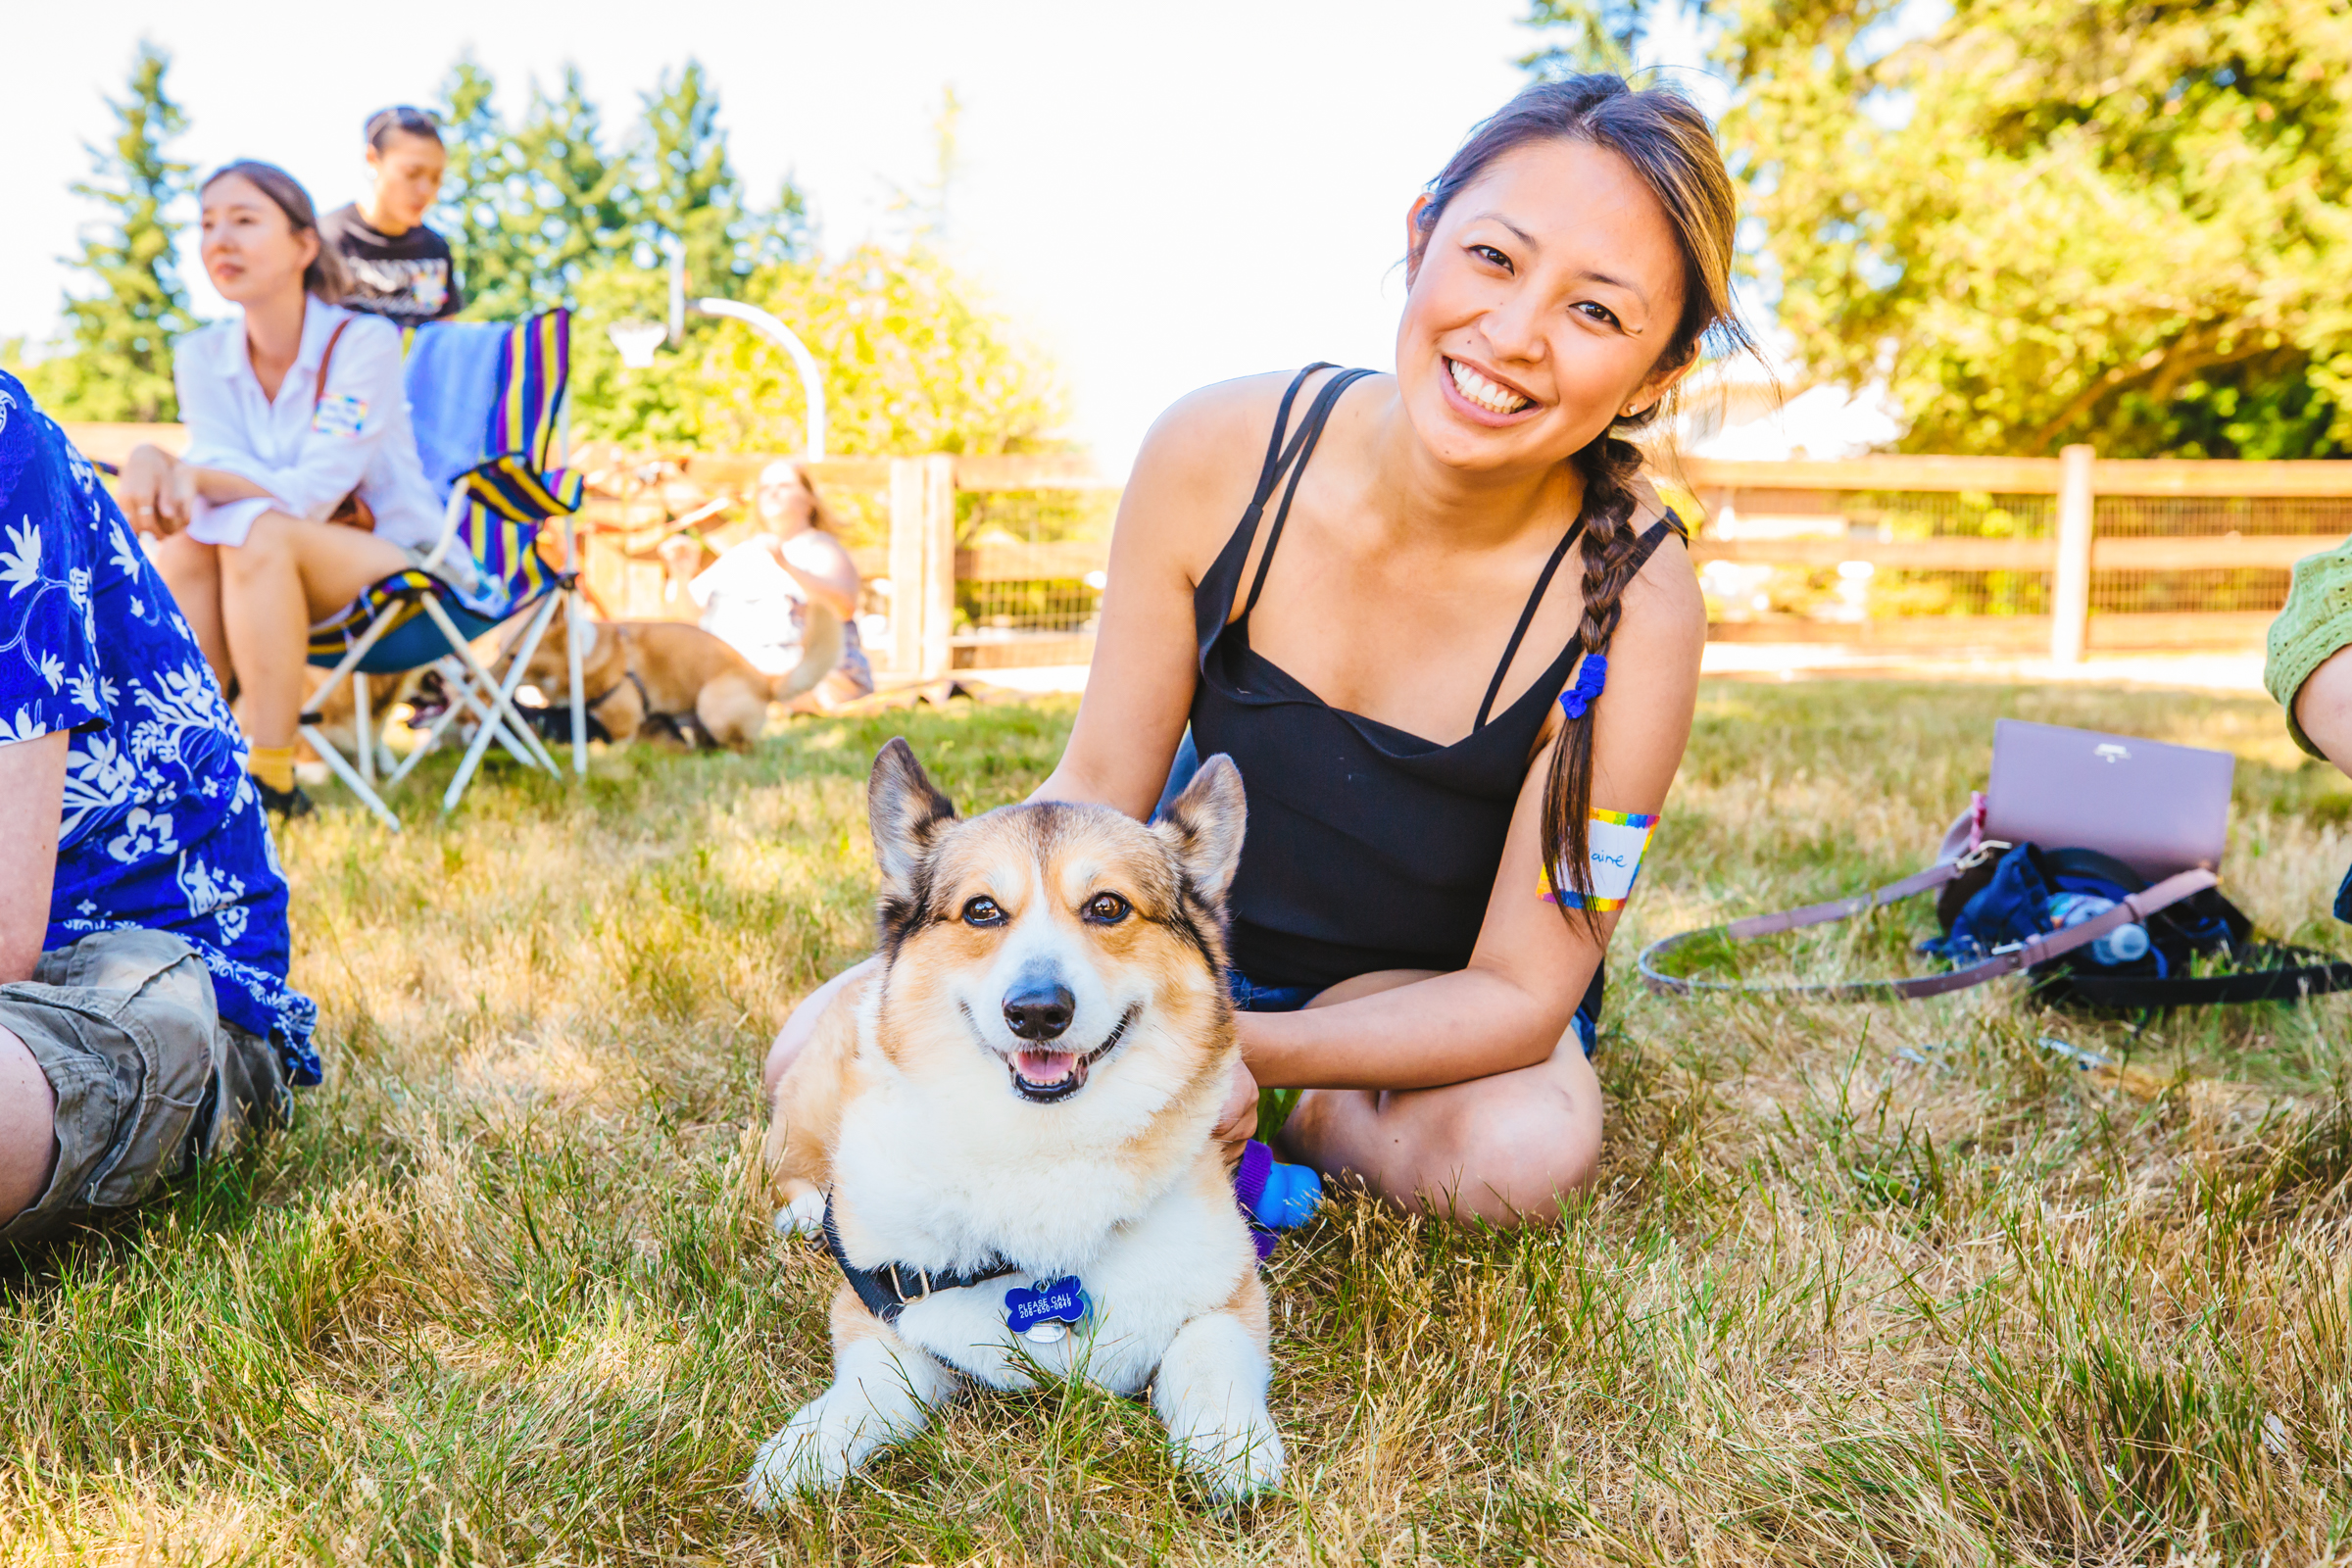 Owners and their corgis came out in droves to the 2017 Pacific Northwest Corgi Picnic in Woodinville, WA. Kathy and Leo Notenboom host the annual event at their home, which raises funds for CorgiAid, a not-for-profit corgi assistance organization. (Sunita Martini / Seattle Refined)